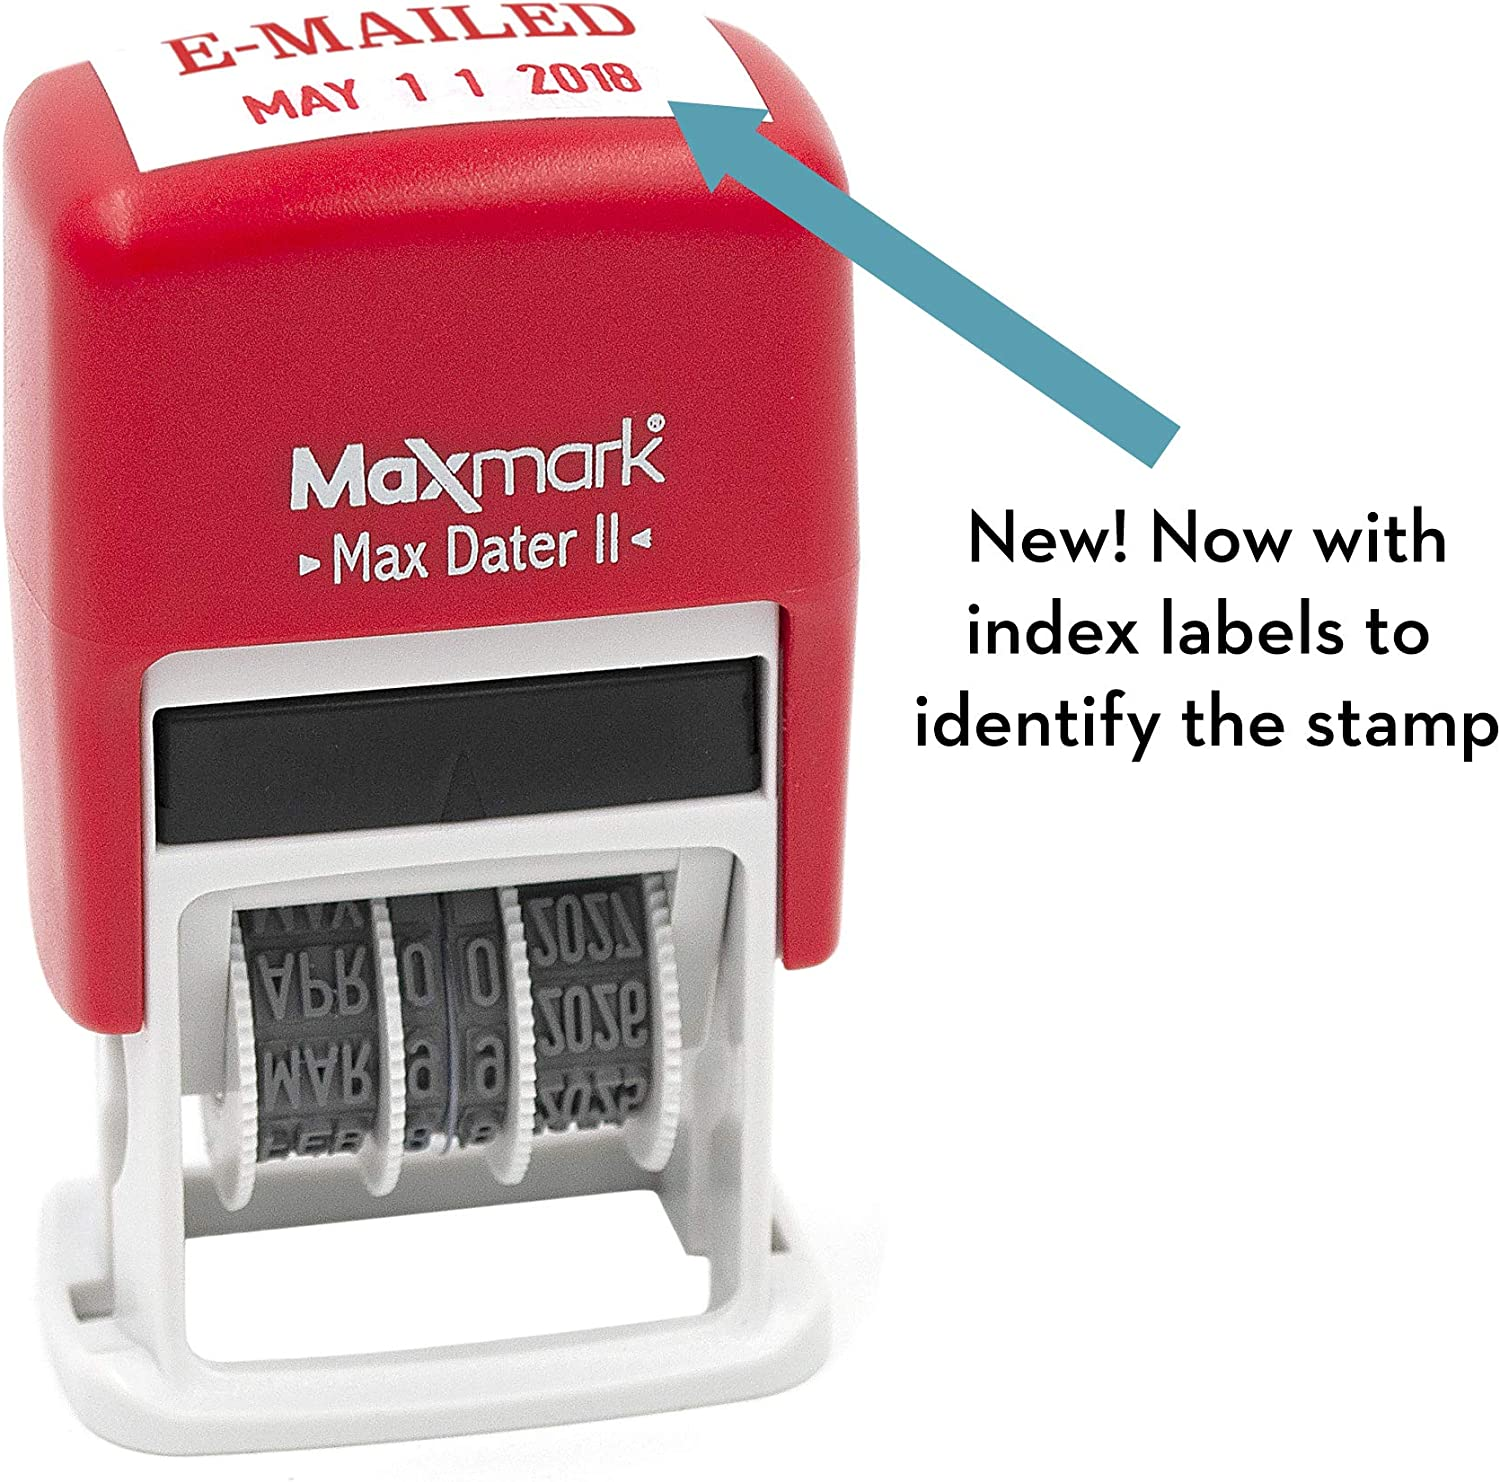 RED Ink 12-Year Band MaxMark Self-Inking Rubber Date Office Stamp with Received Phrase /& Date Max Dater II